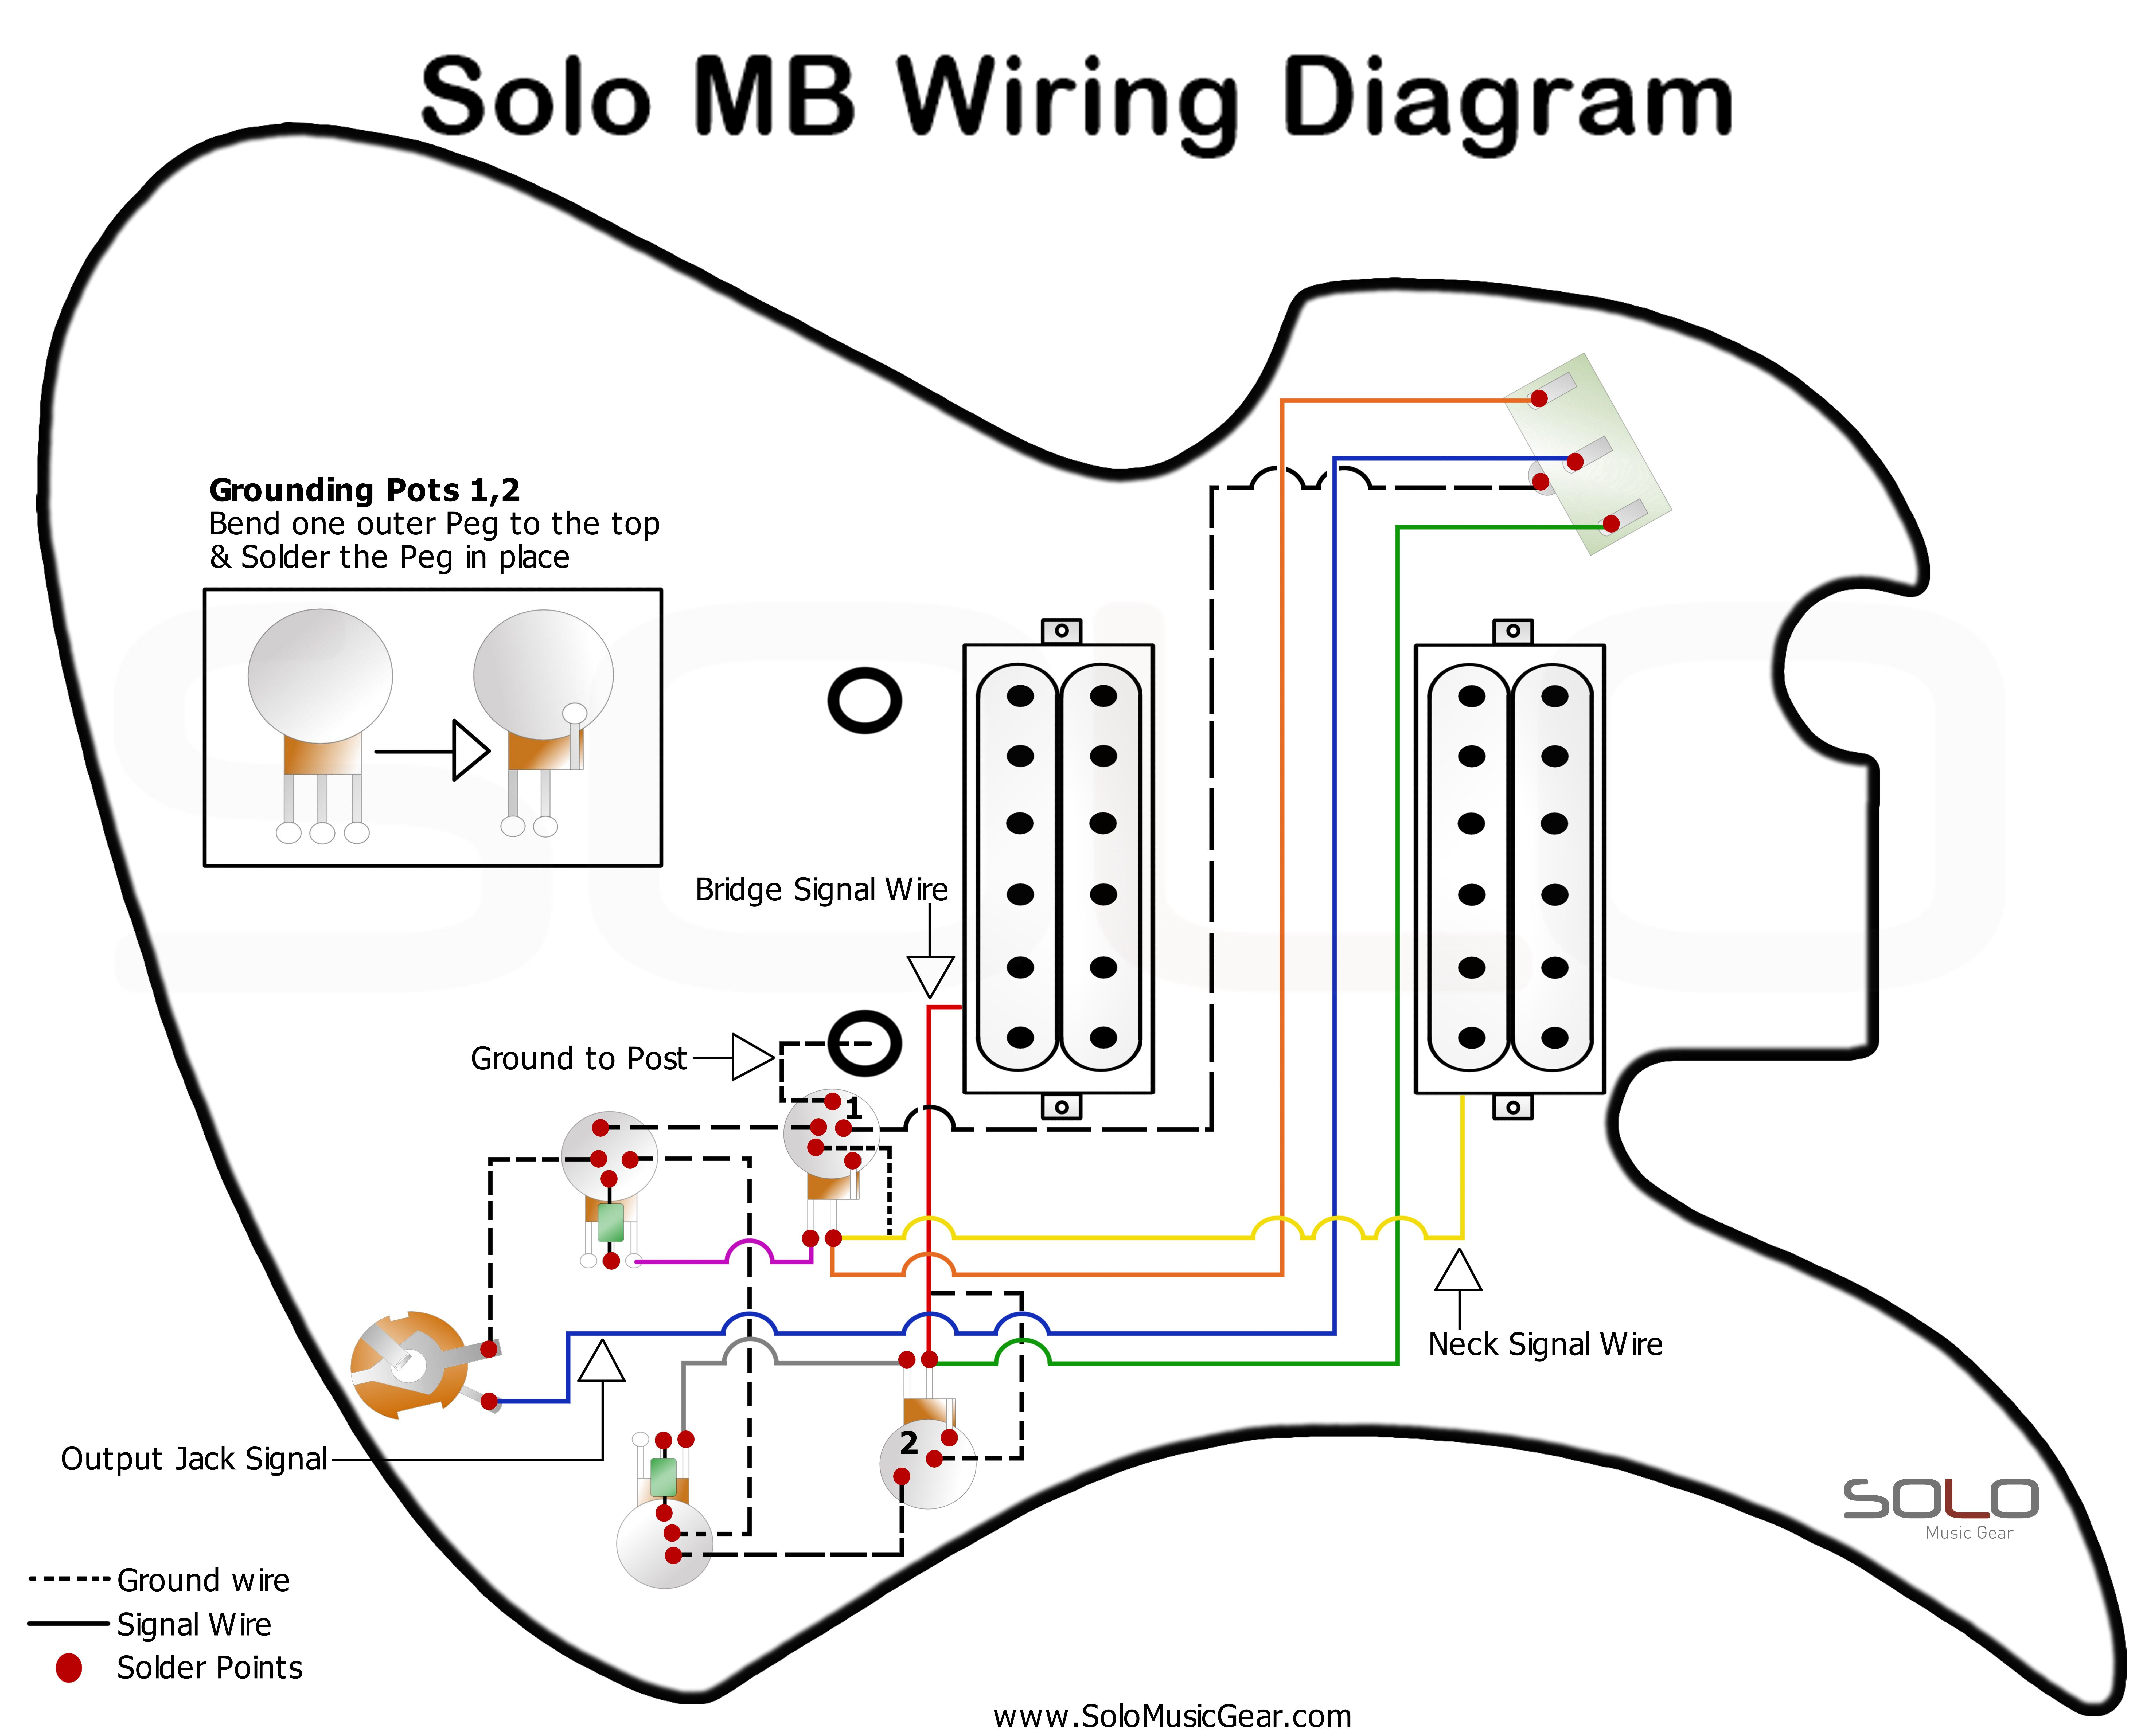 Guitar Wiring Diagrams Manuals Solo Music Gear Diagram Solo Music Wire